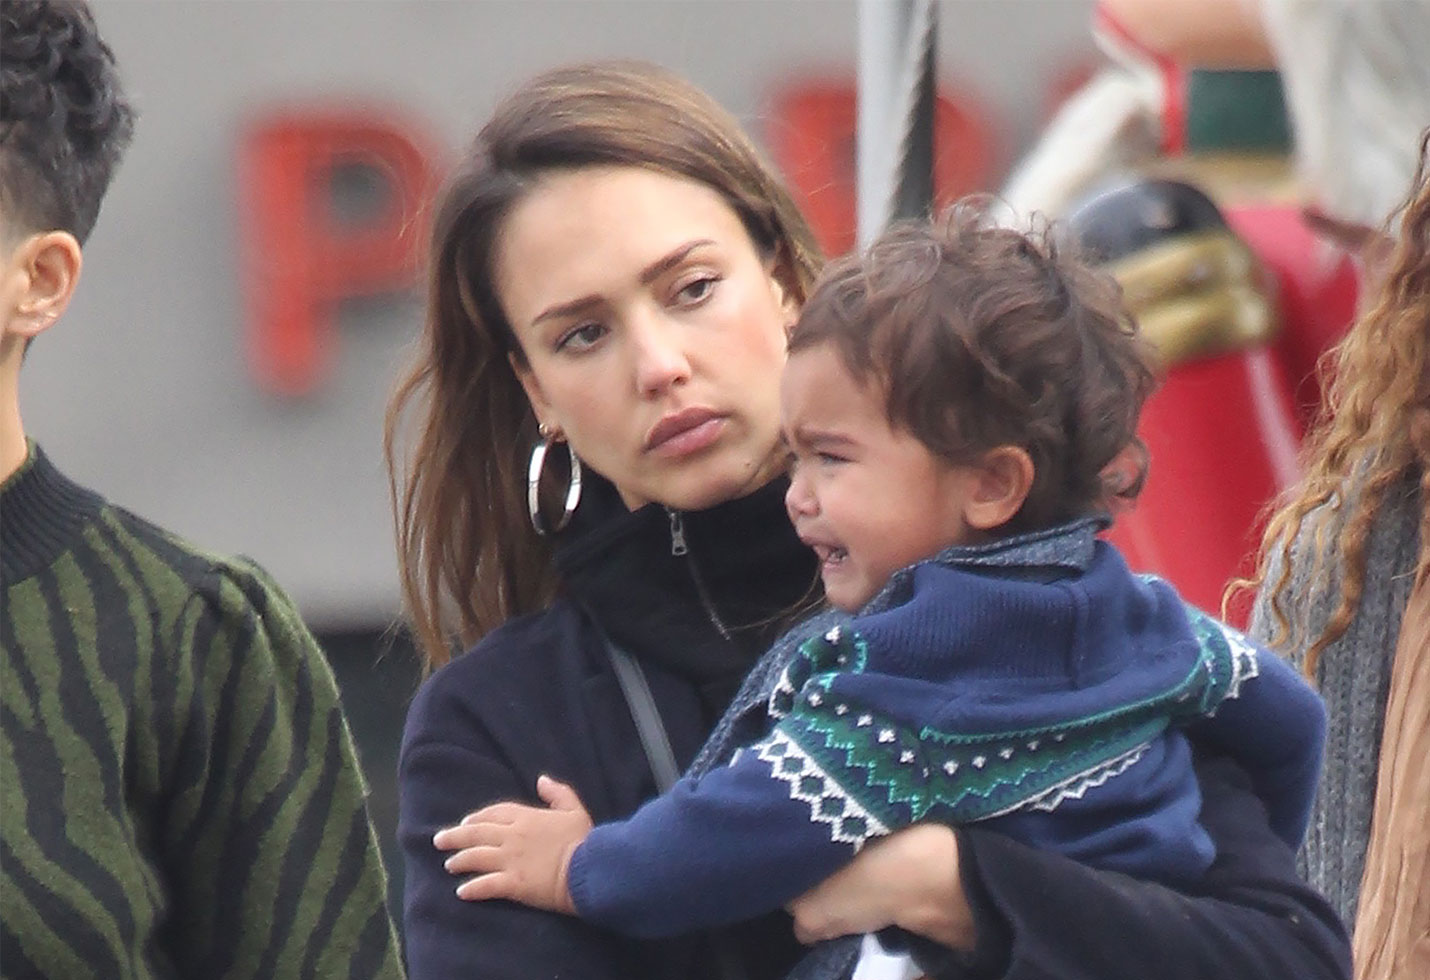 Jessica Alba, husband Cash Warren and children out and about in West Hollywood.